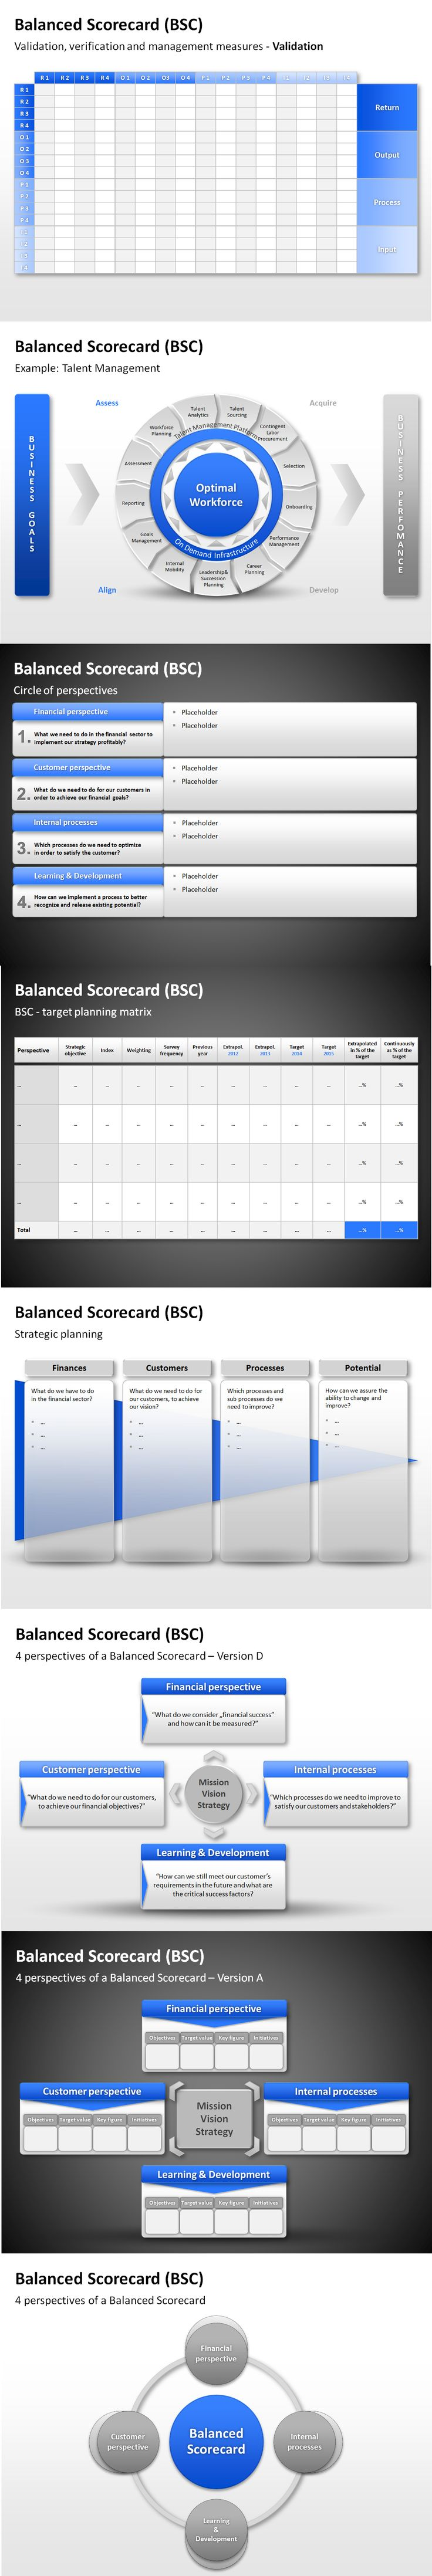 Balanced Scorecard templates for the depiction and analysis of your company activities in a PowerPoint presentation